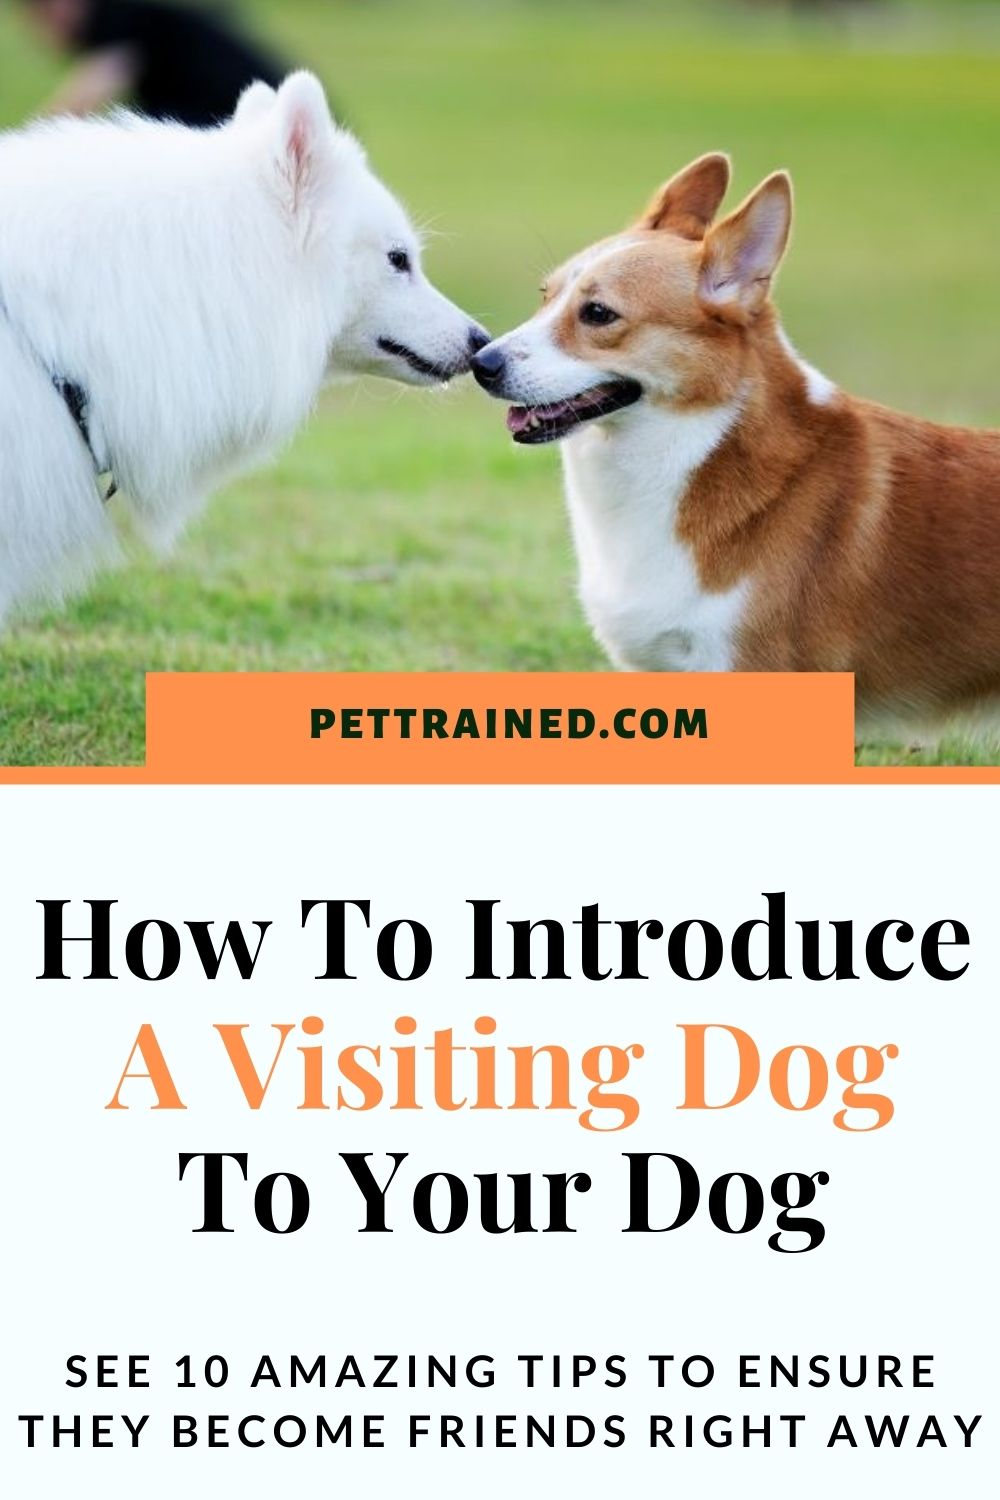 How to introduce one dog to another